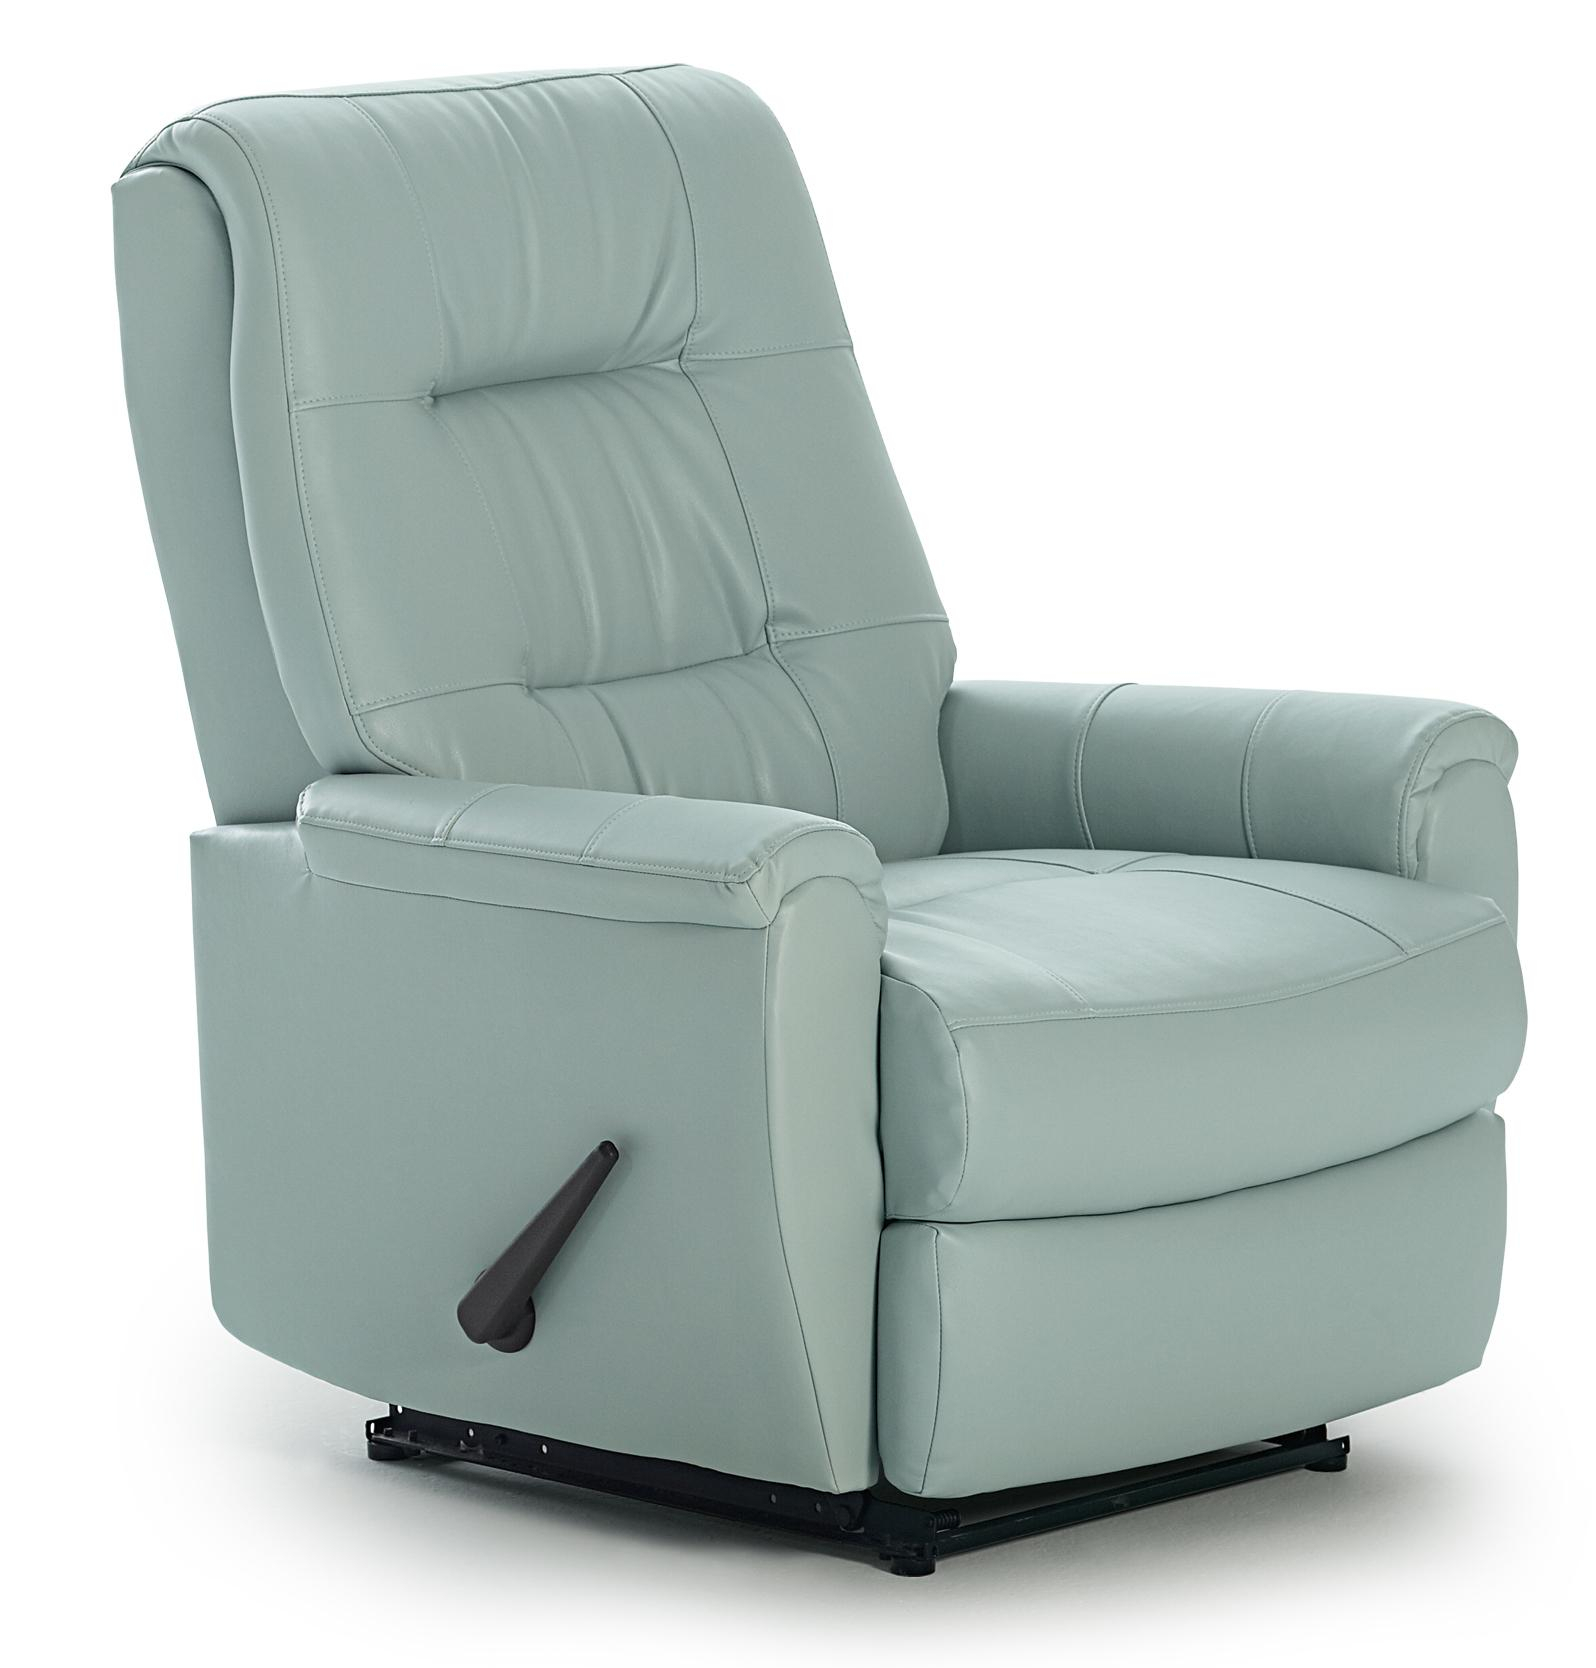 Leather Swivel Rocker Recliner And Its Benefits | With Regard To Decker Ii Fabric Swivel Glider Recliners (Image 19 of 25)